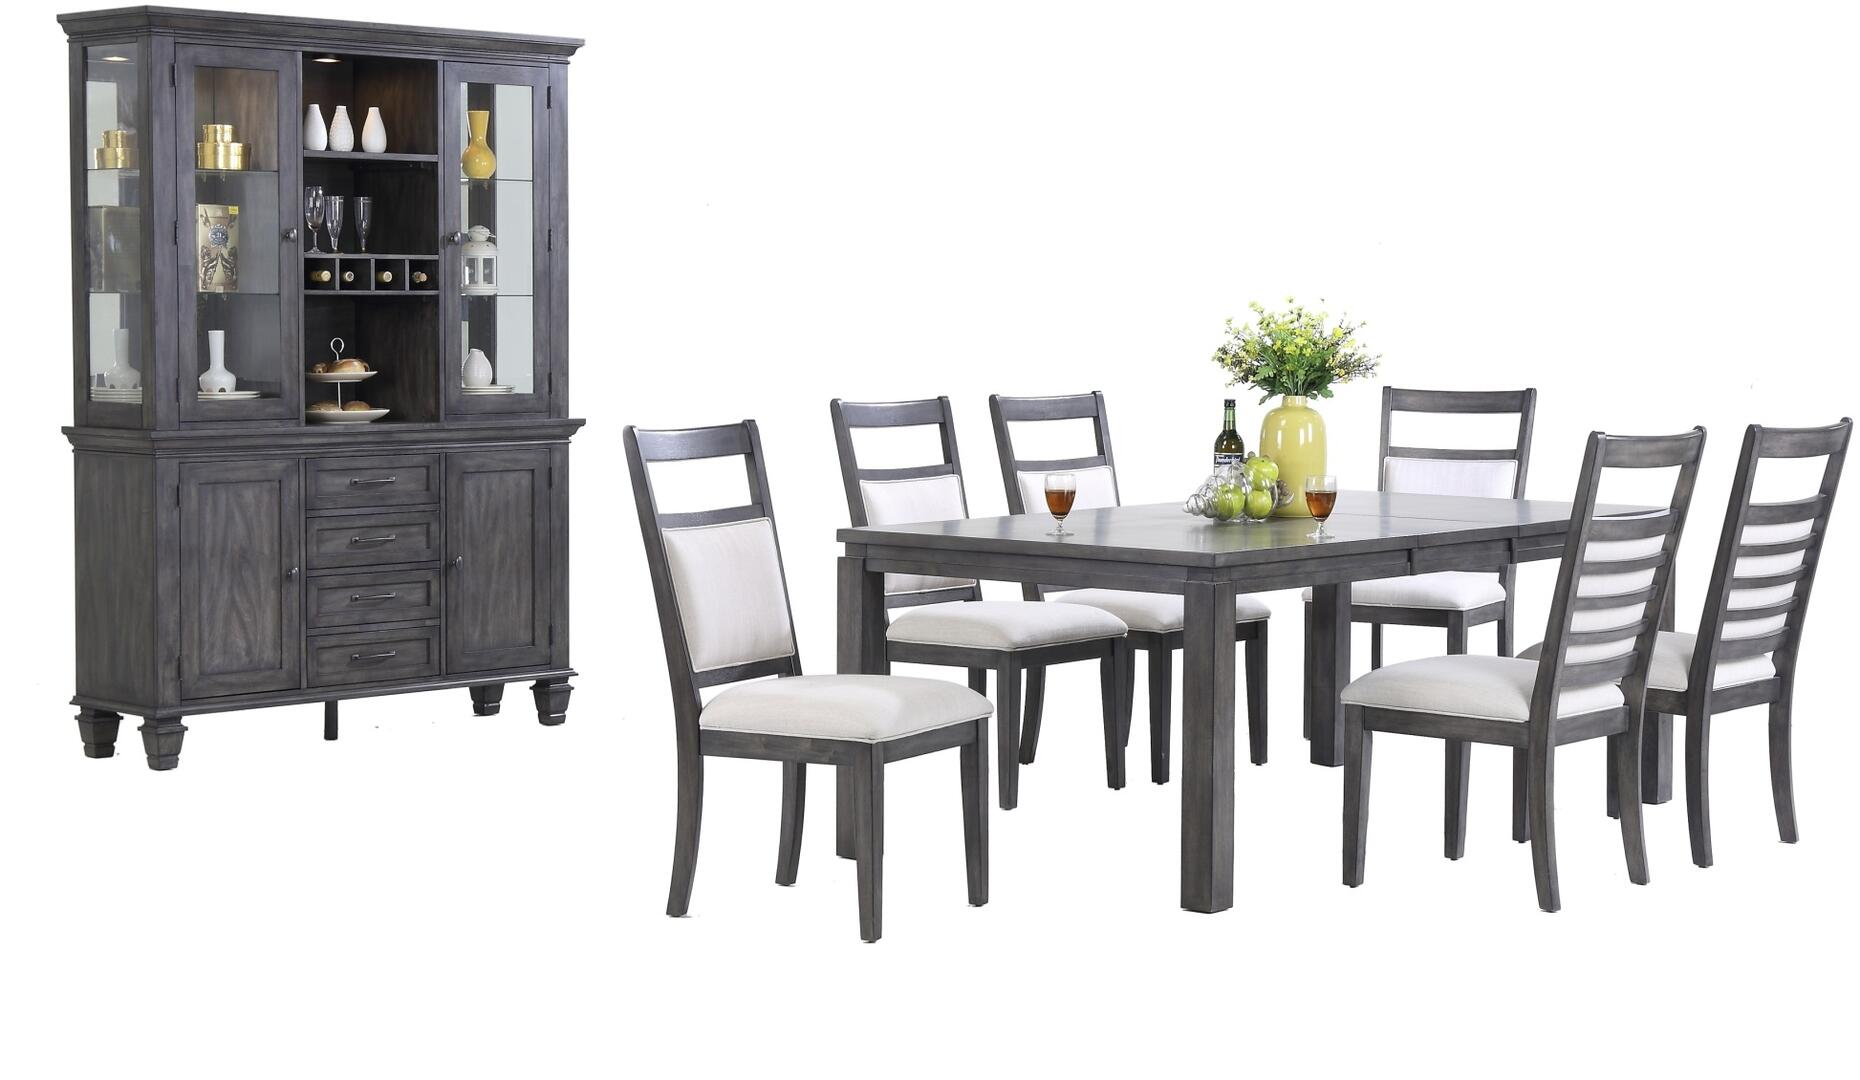 Dining Room Table And China Cabinet Set